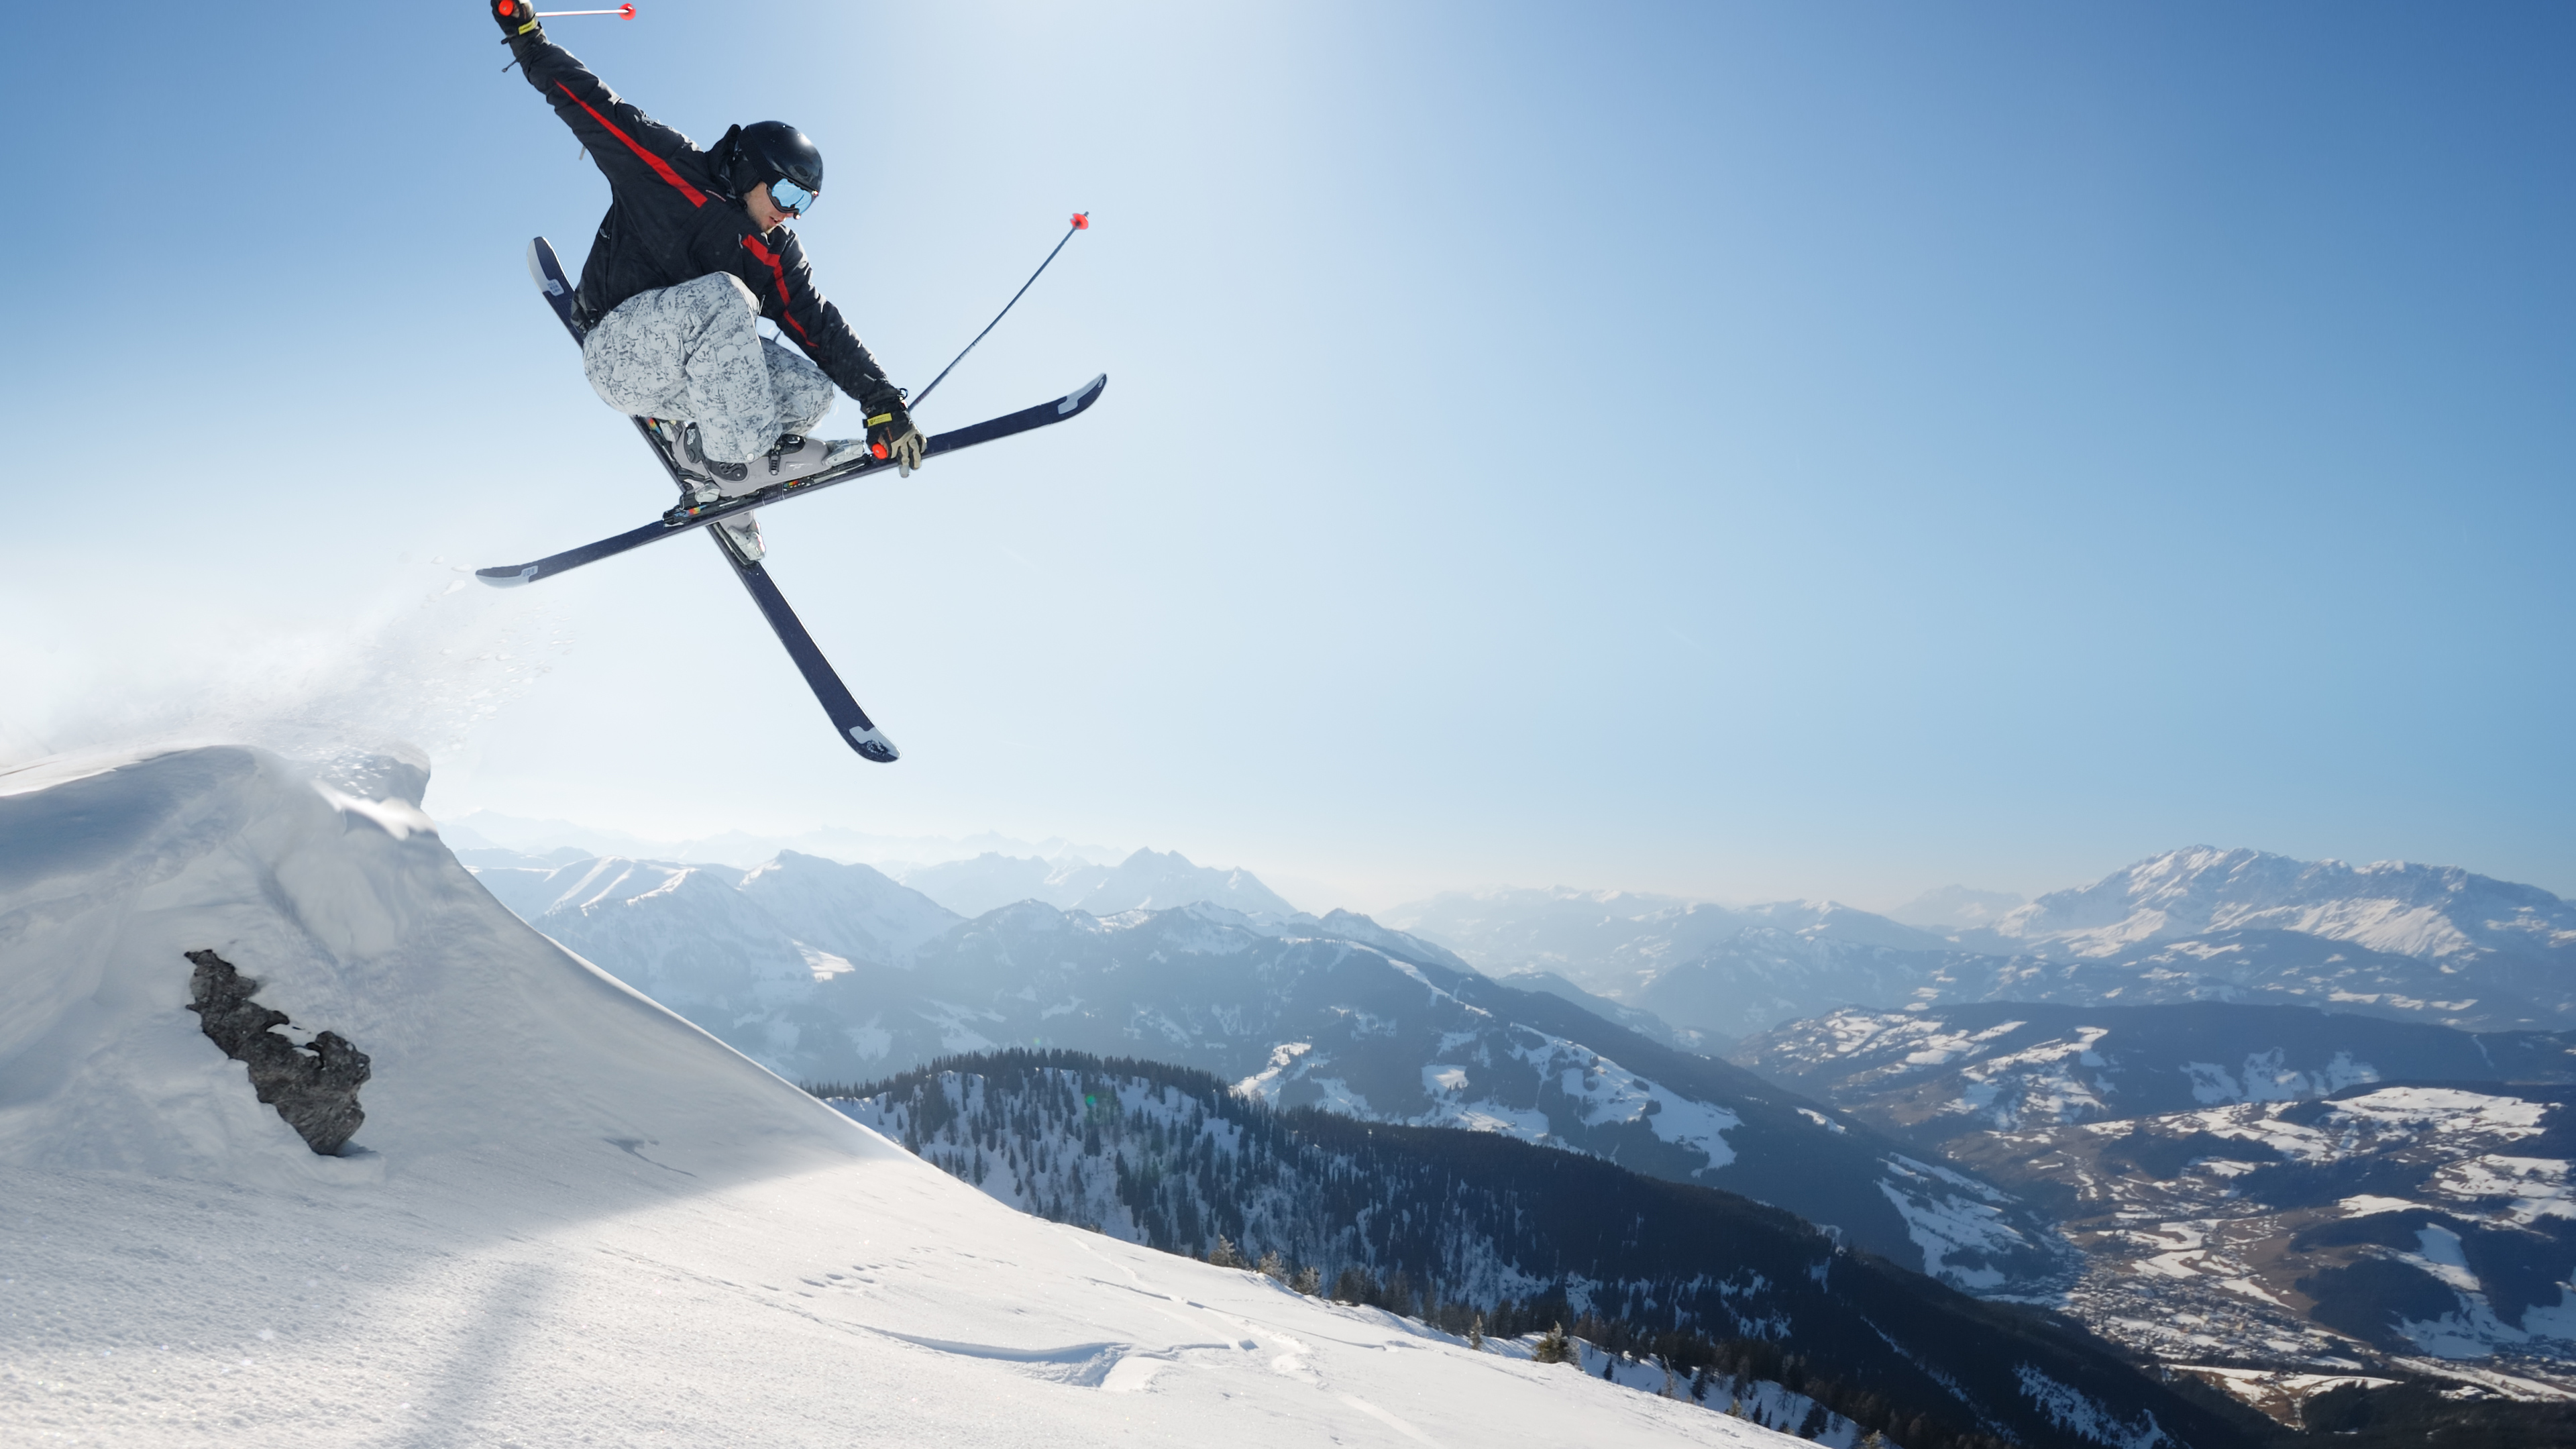 Skiing 4k Ultra HD Wallpaper And Background Image